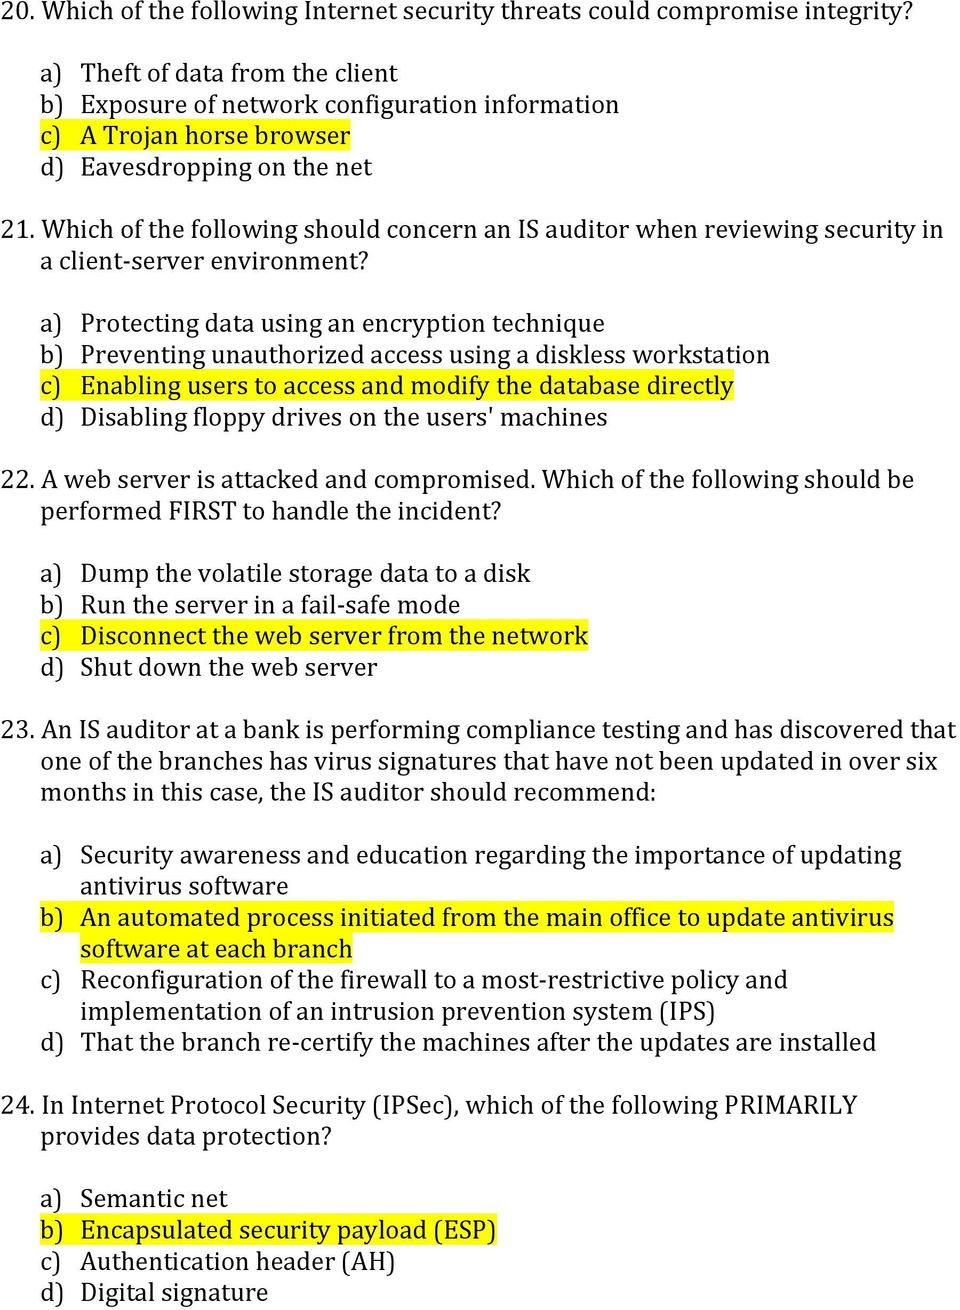 Which of the following should concern an IS auditor when reviewing security in a client- server environment?